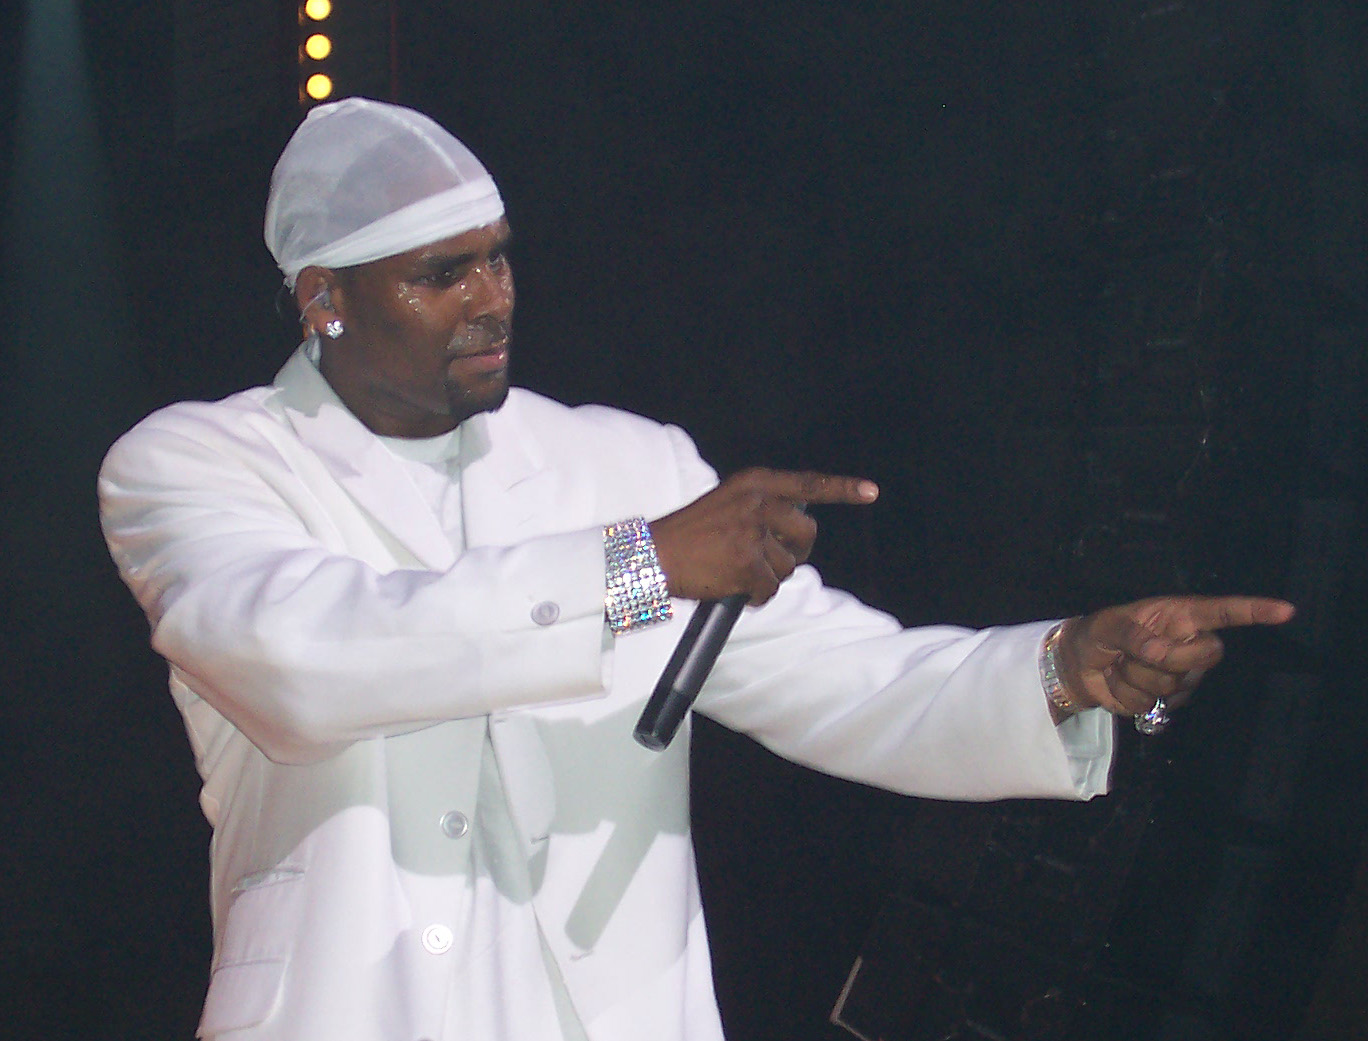 List Of Awards And Nominations Received By R Kelly